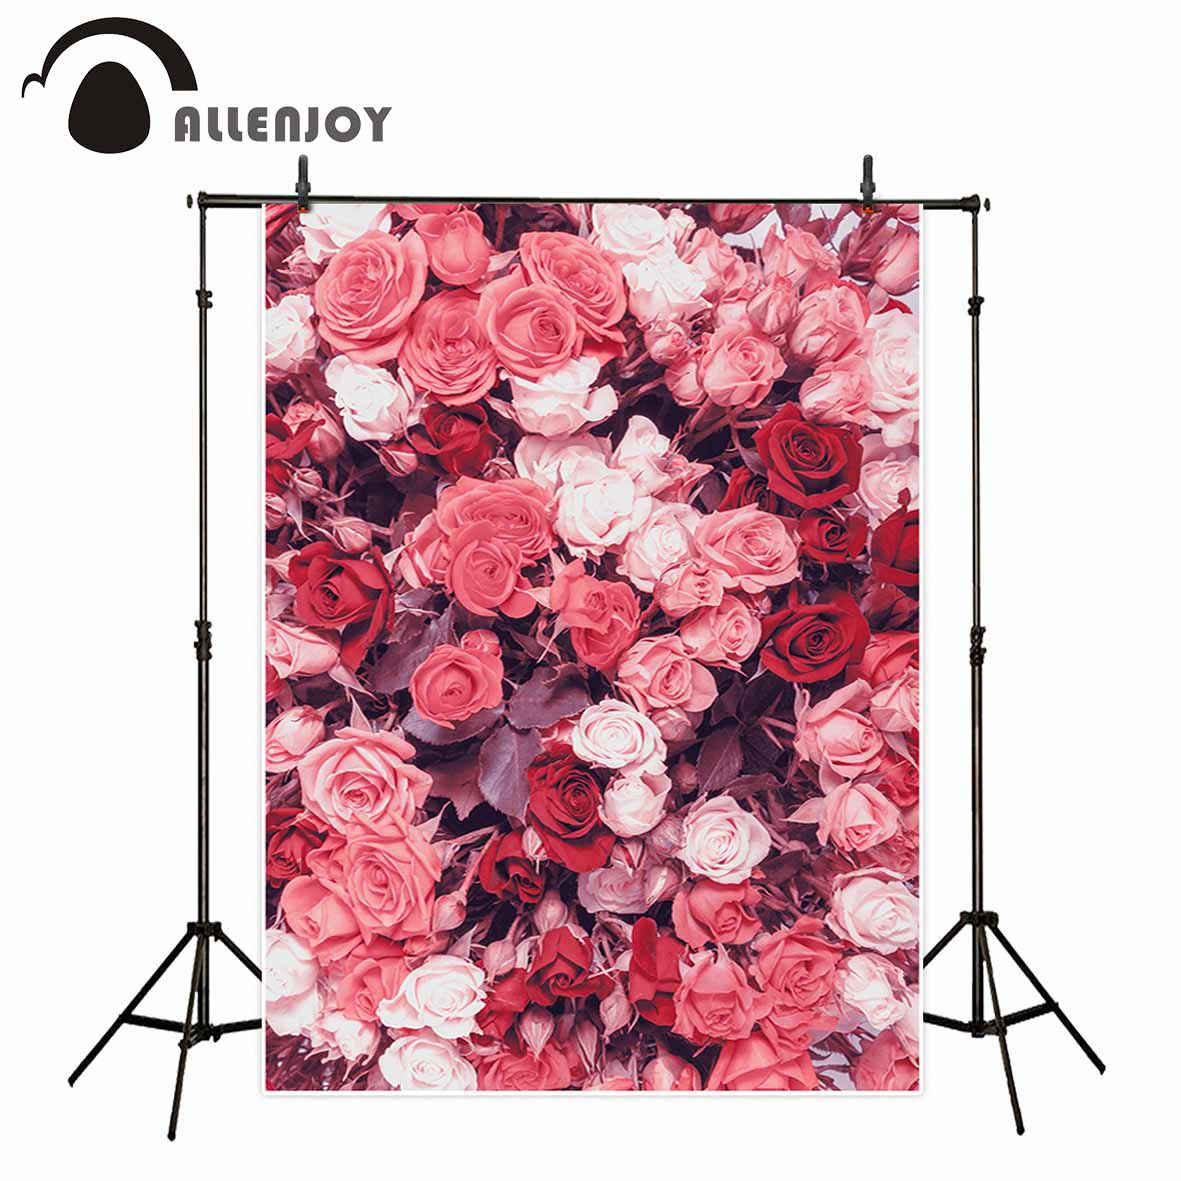 Allenjoy photographic studio background Pink White Rose Garden Romantic Nature new arrivals vinyl photocall photography backdrop